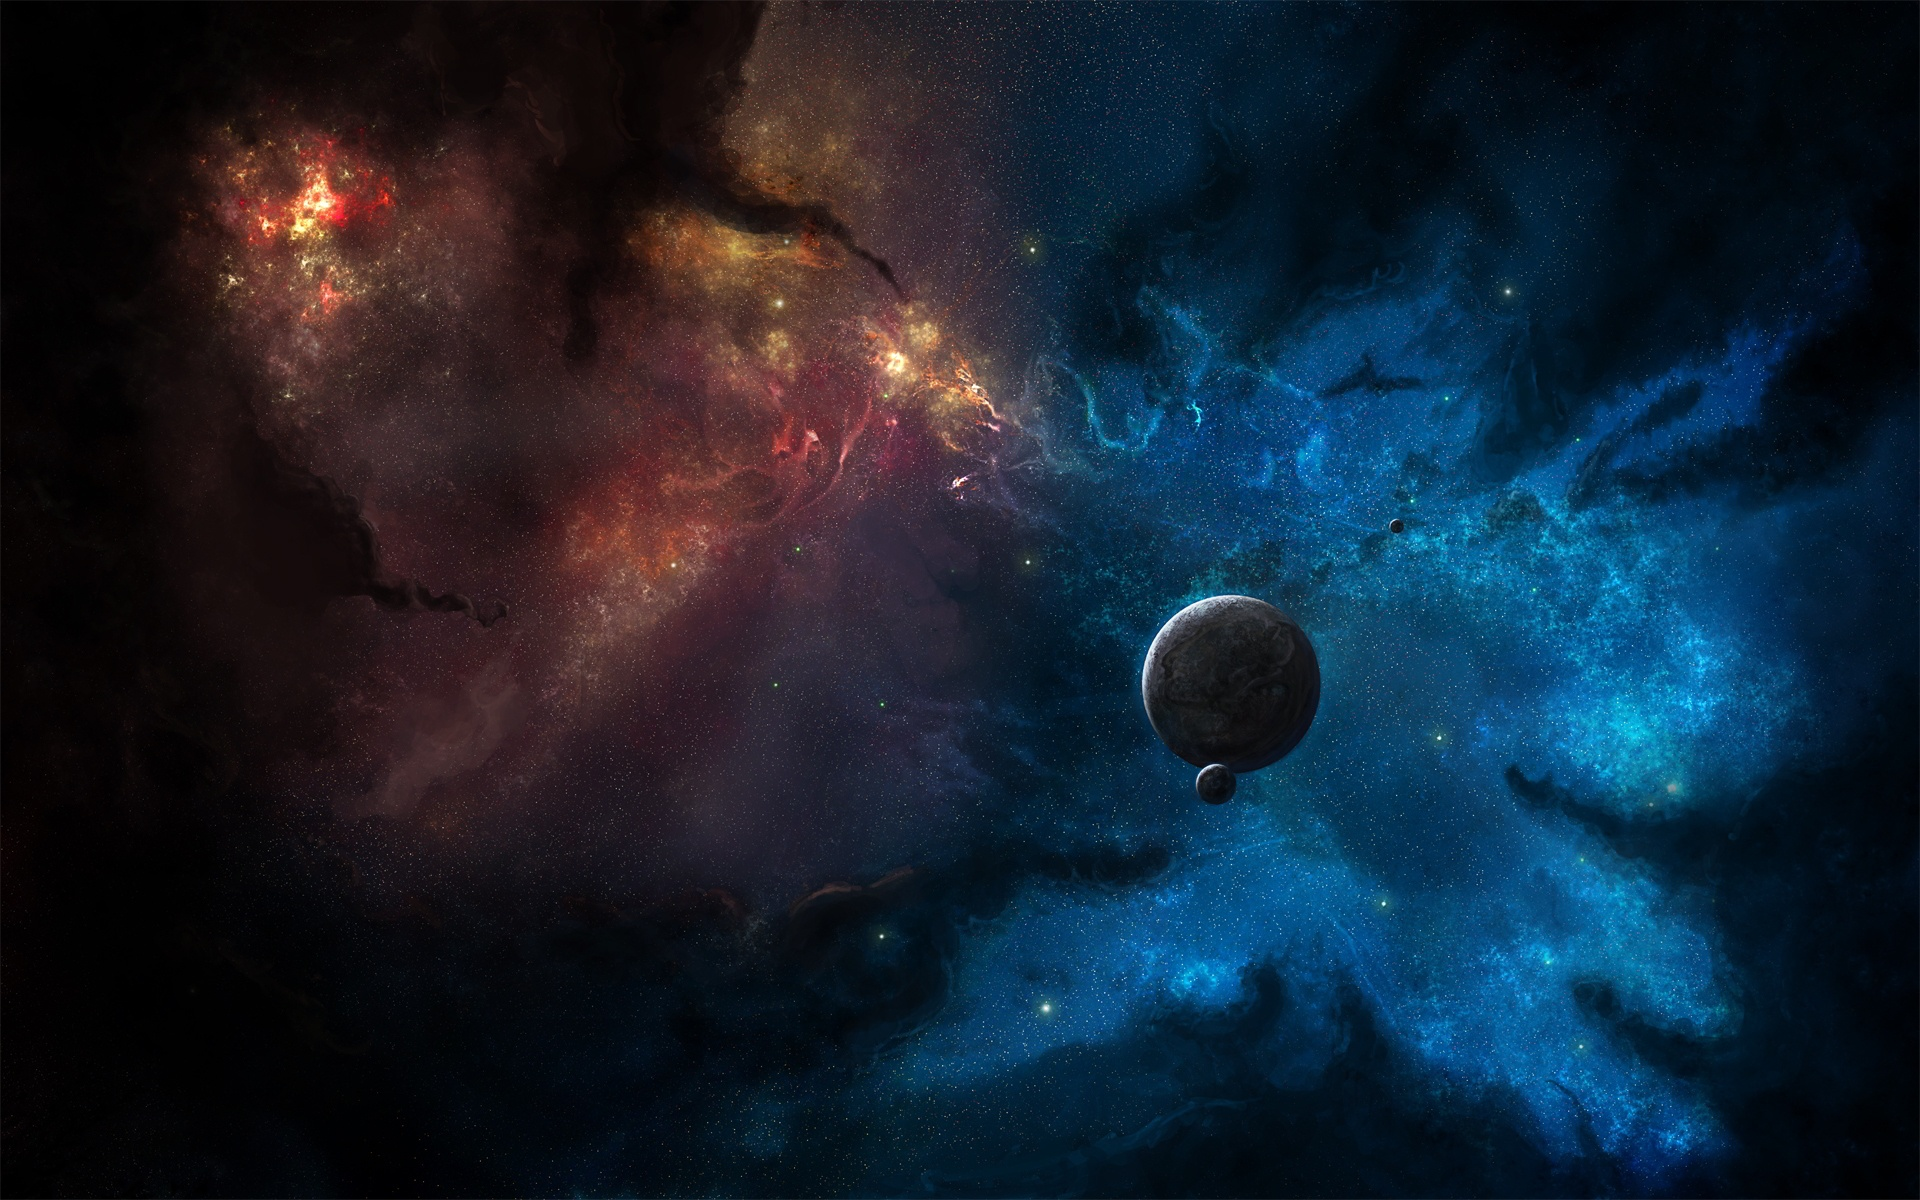 nebula tumblr background - photo #8